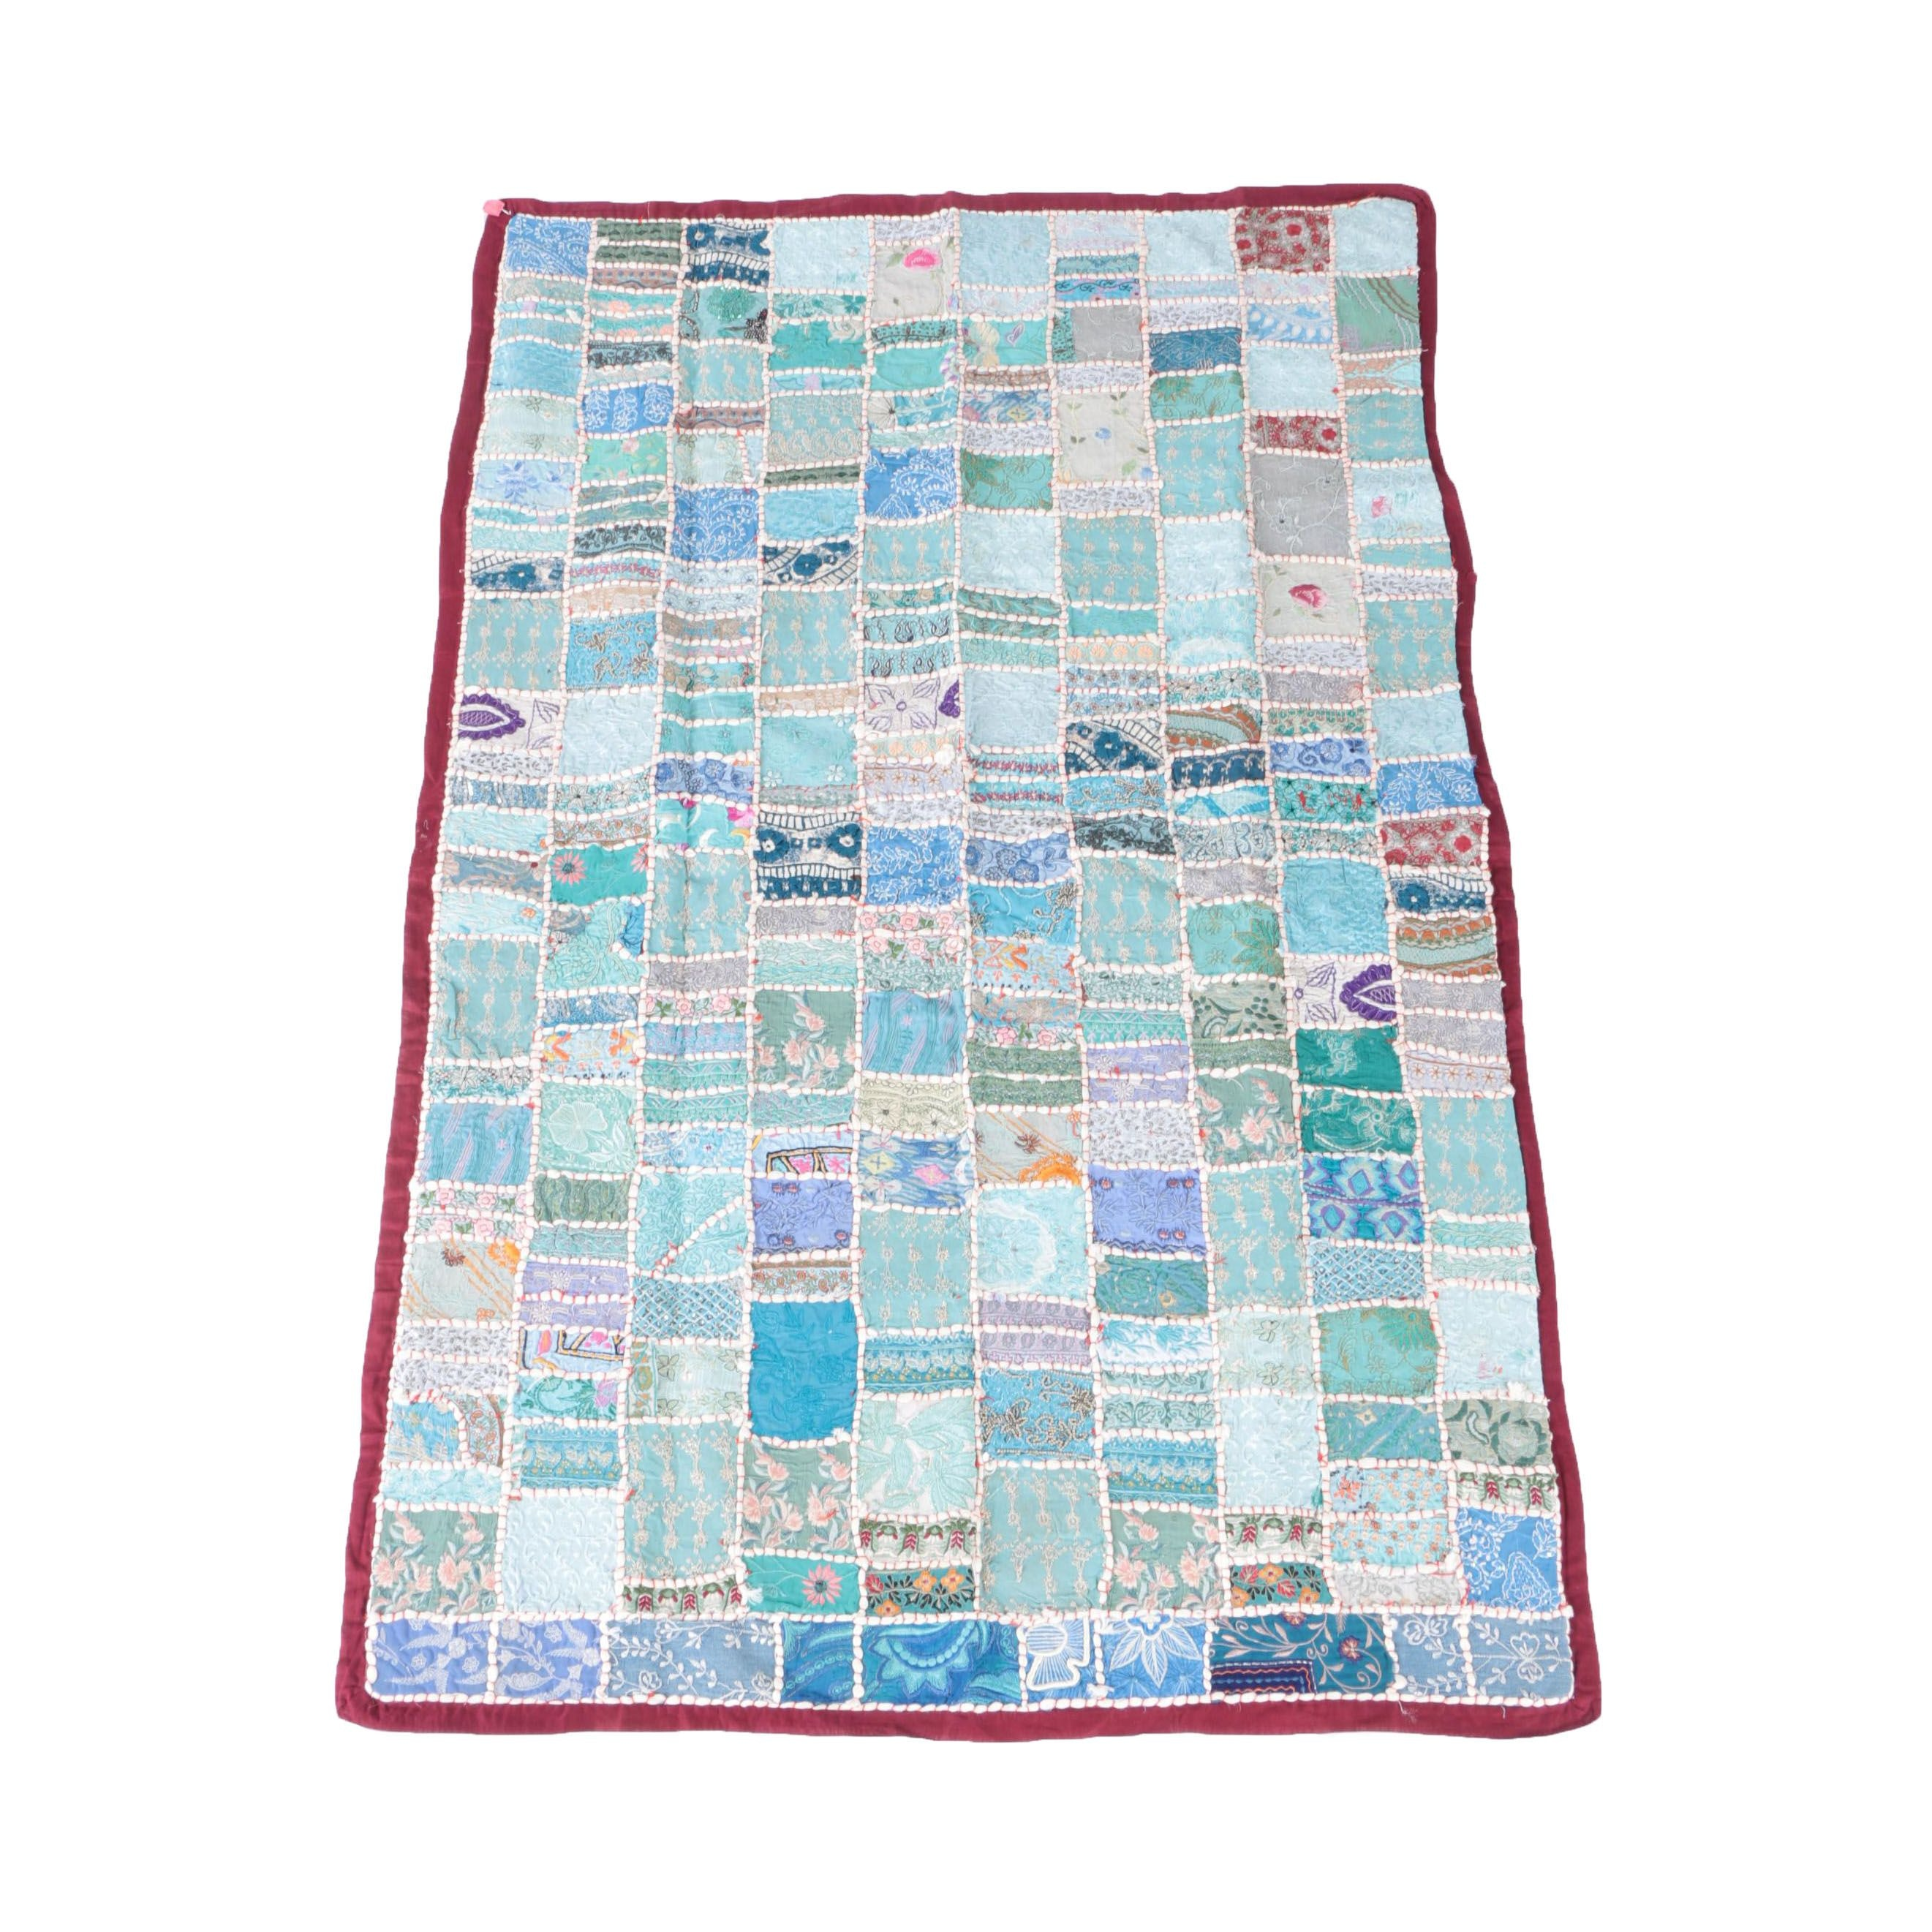 Hand Sewn Indian Pieced and Embroidered Quilt